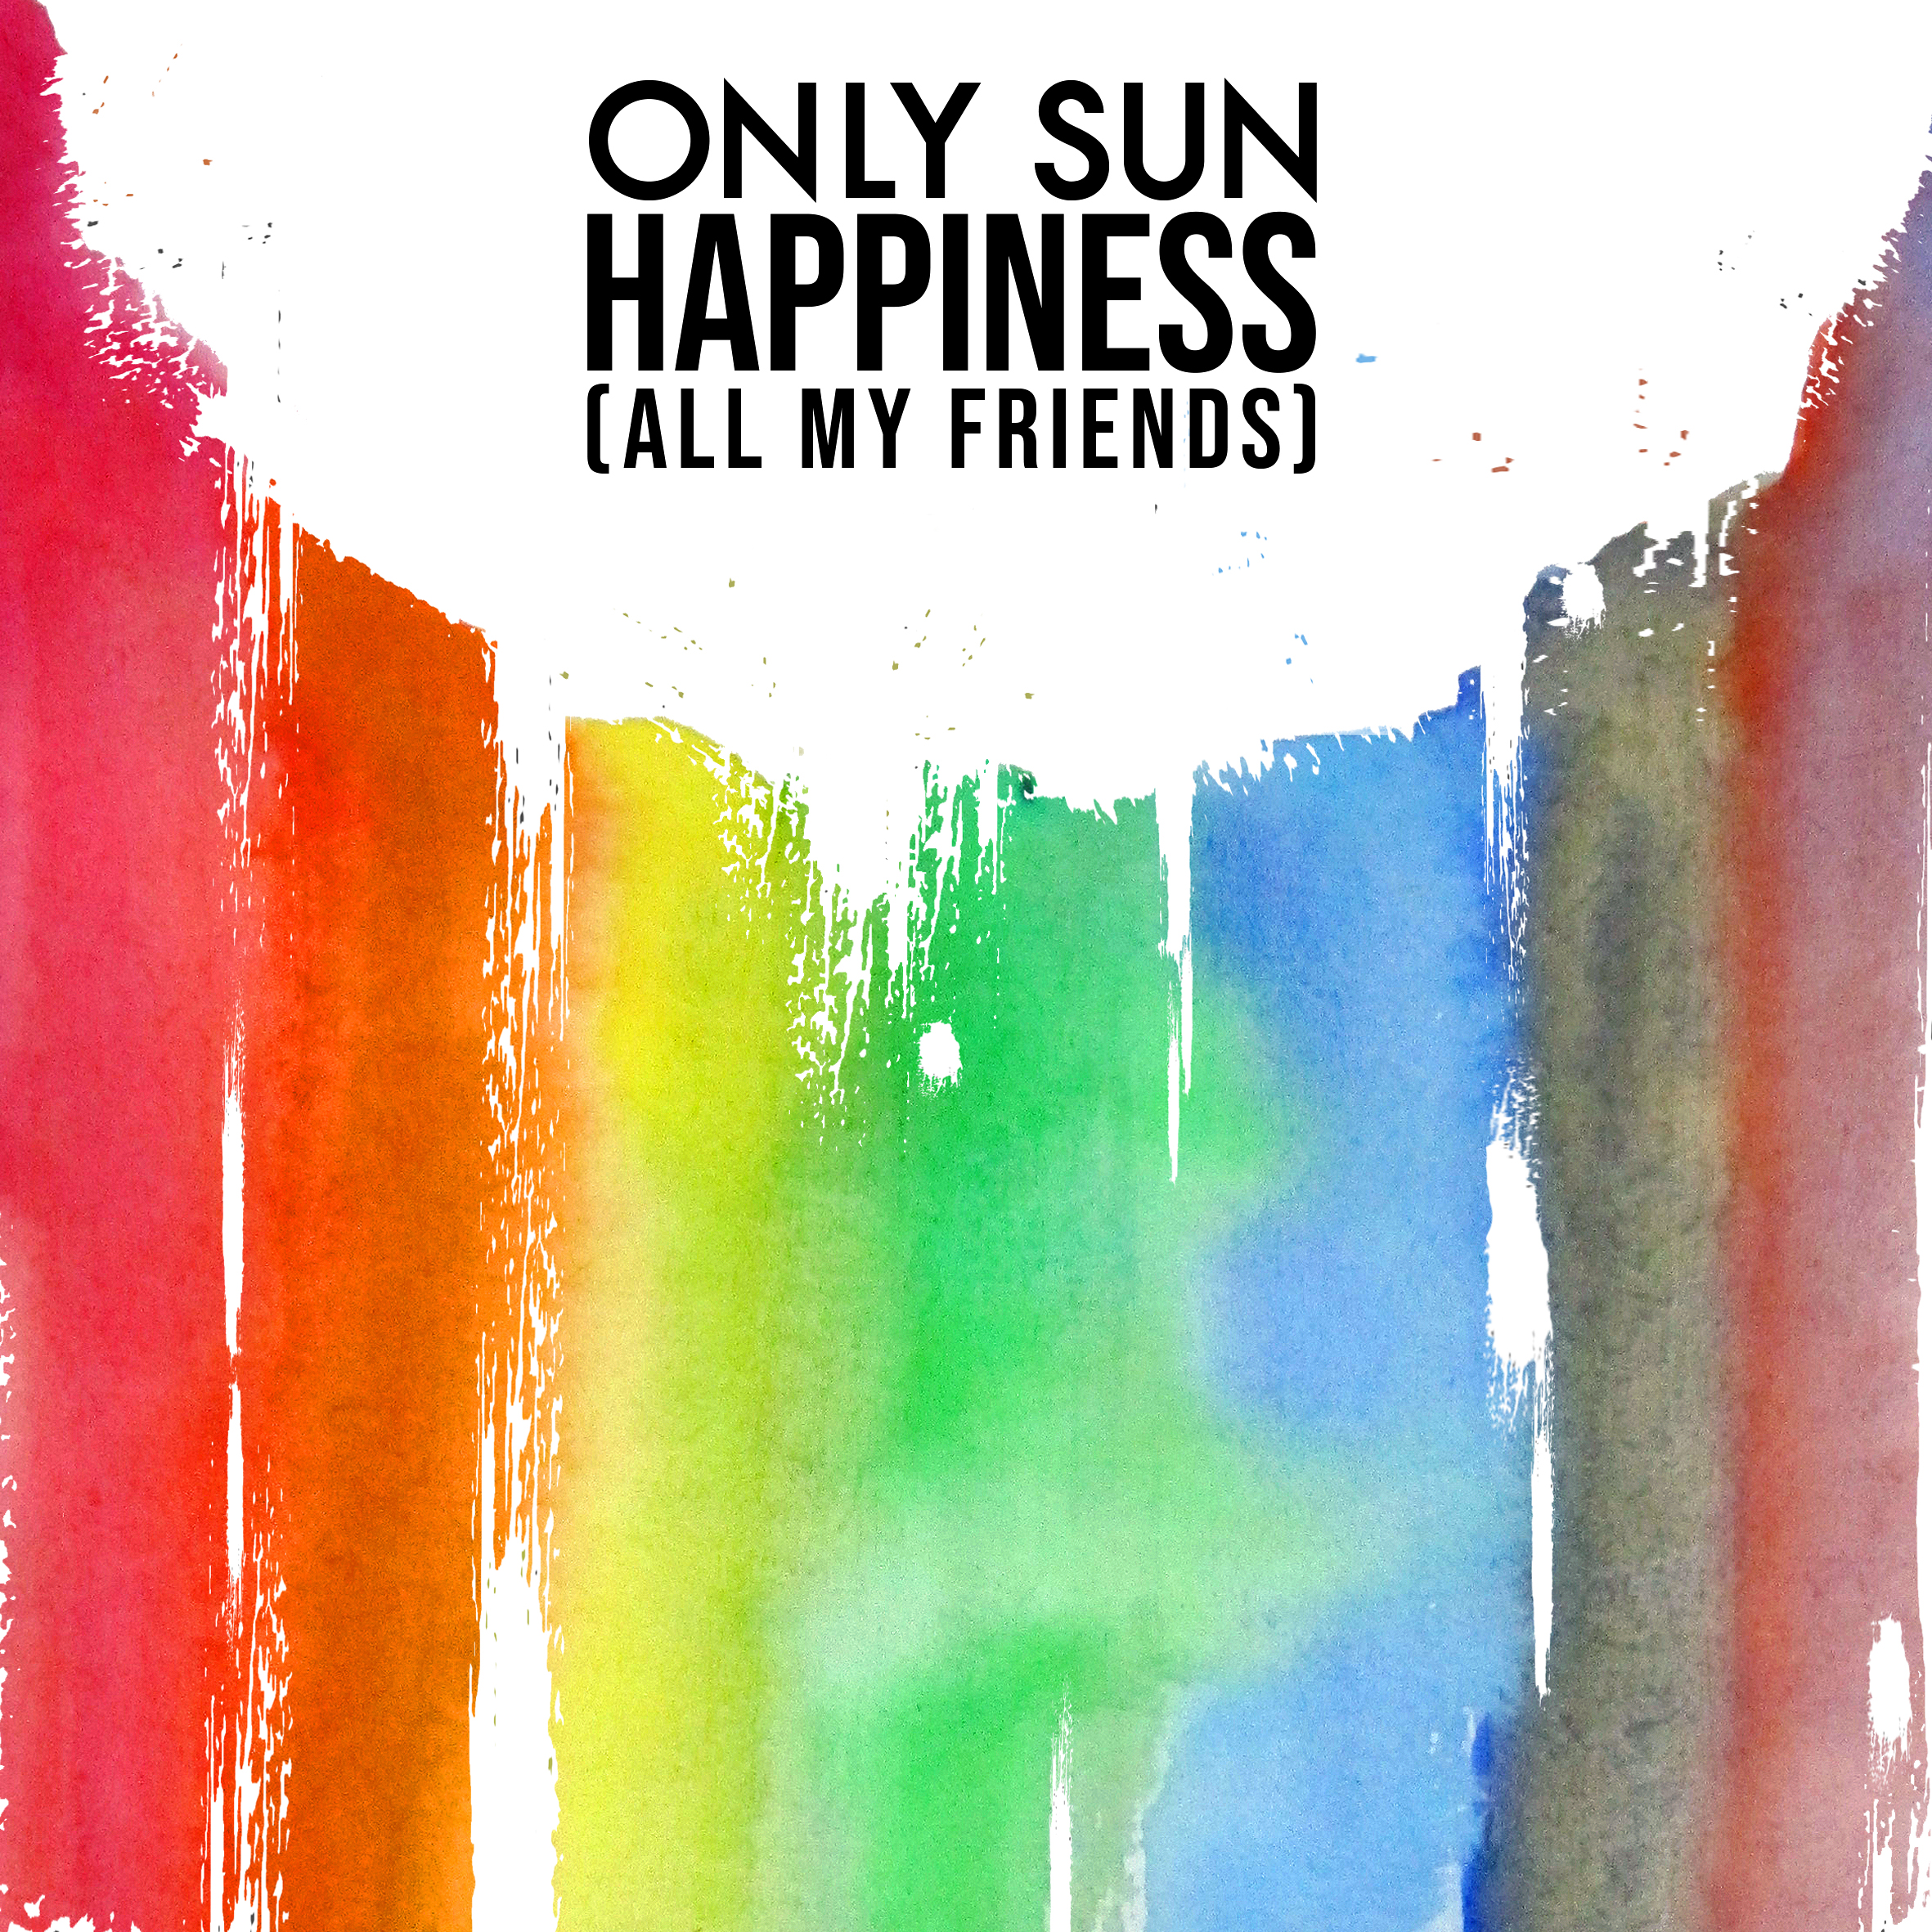 Only Sun - Happiness (All My Friends) - Artwork.jpg